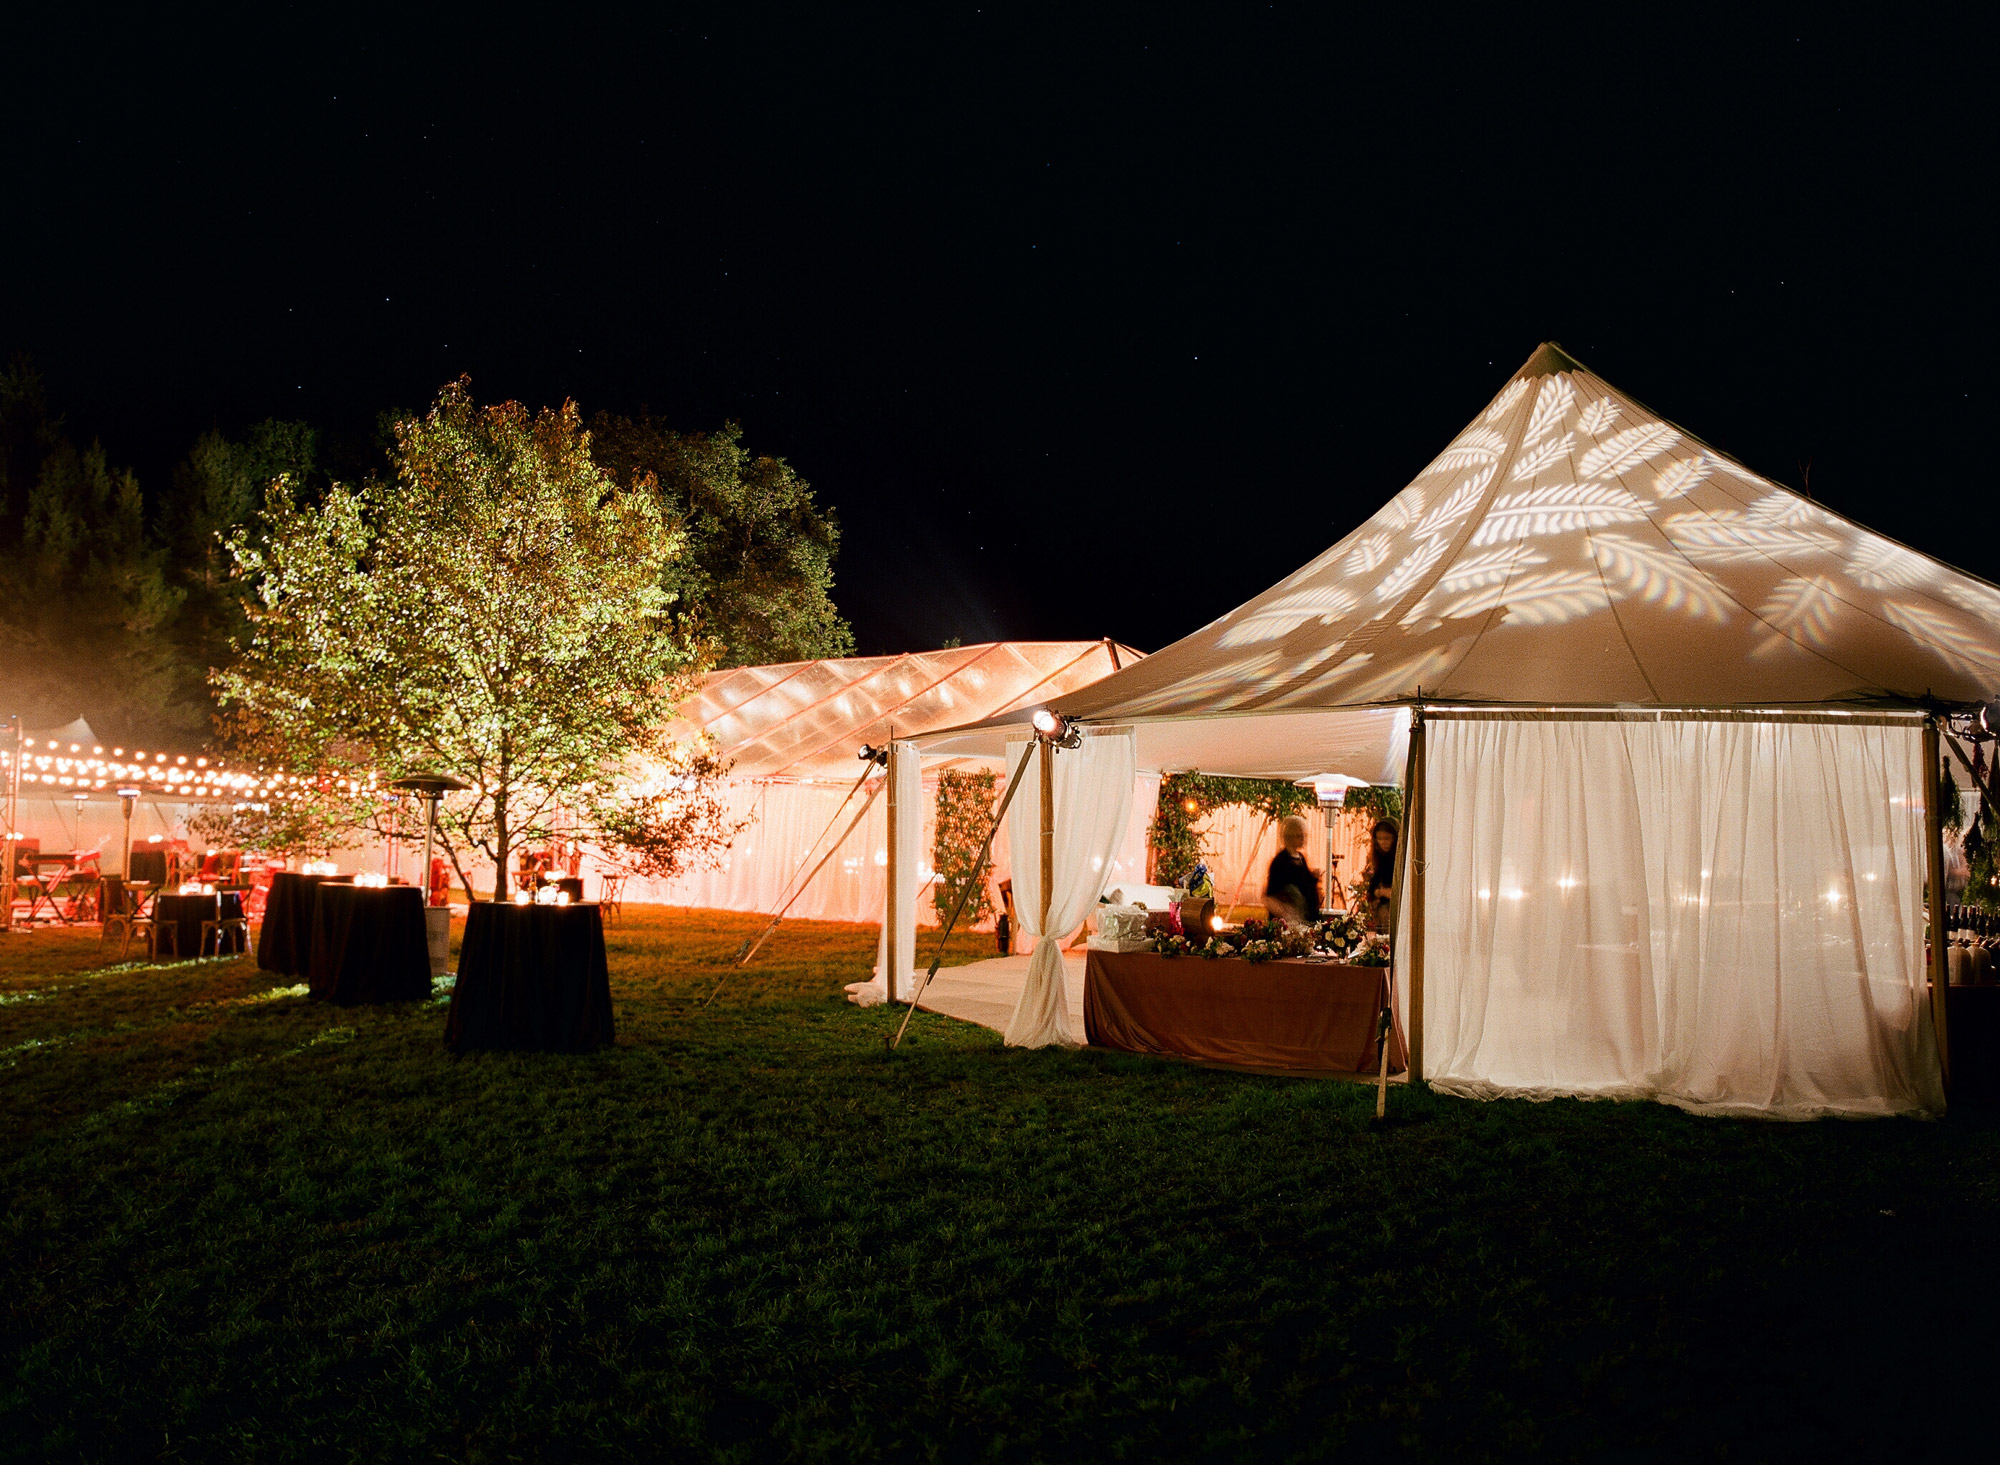 the lighting on the tent matched their custom field guide-inspired invitations -